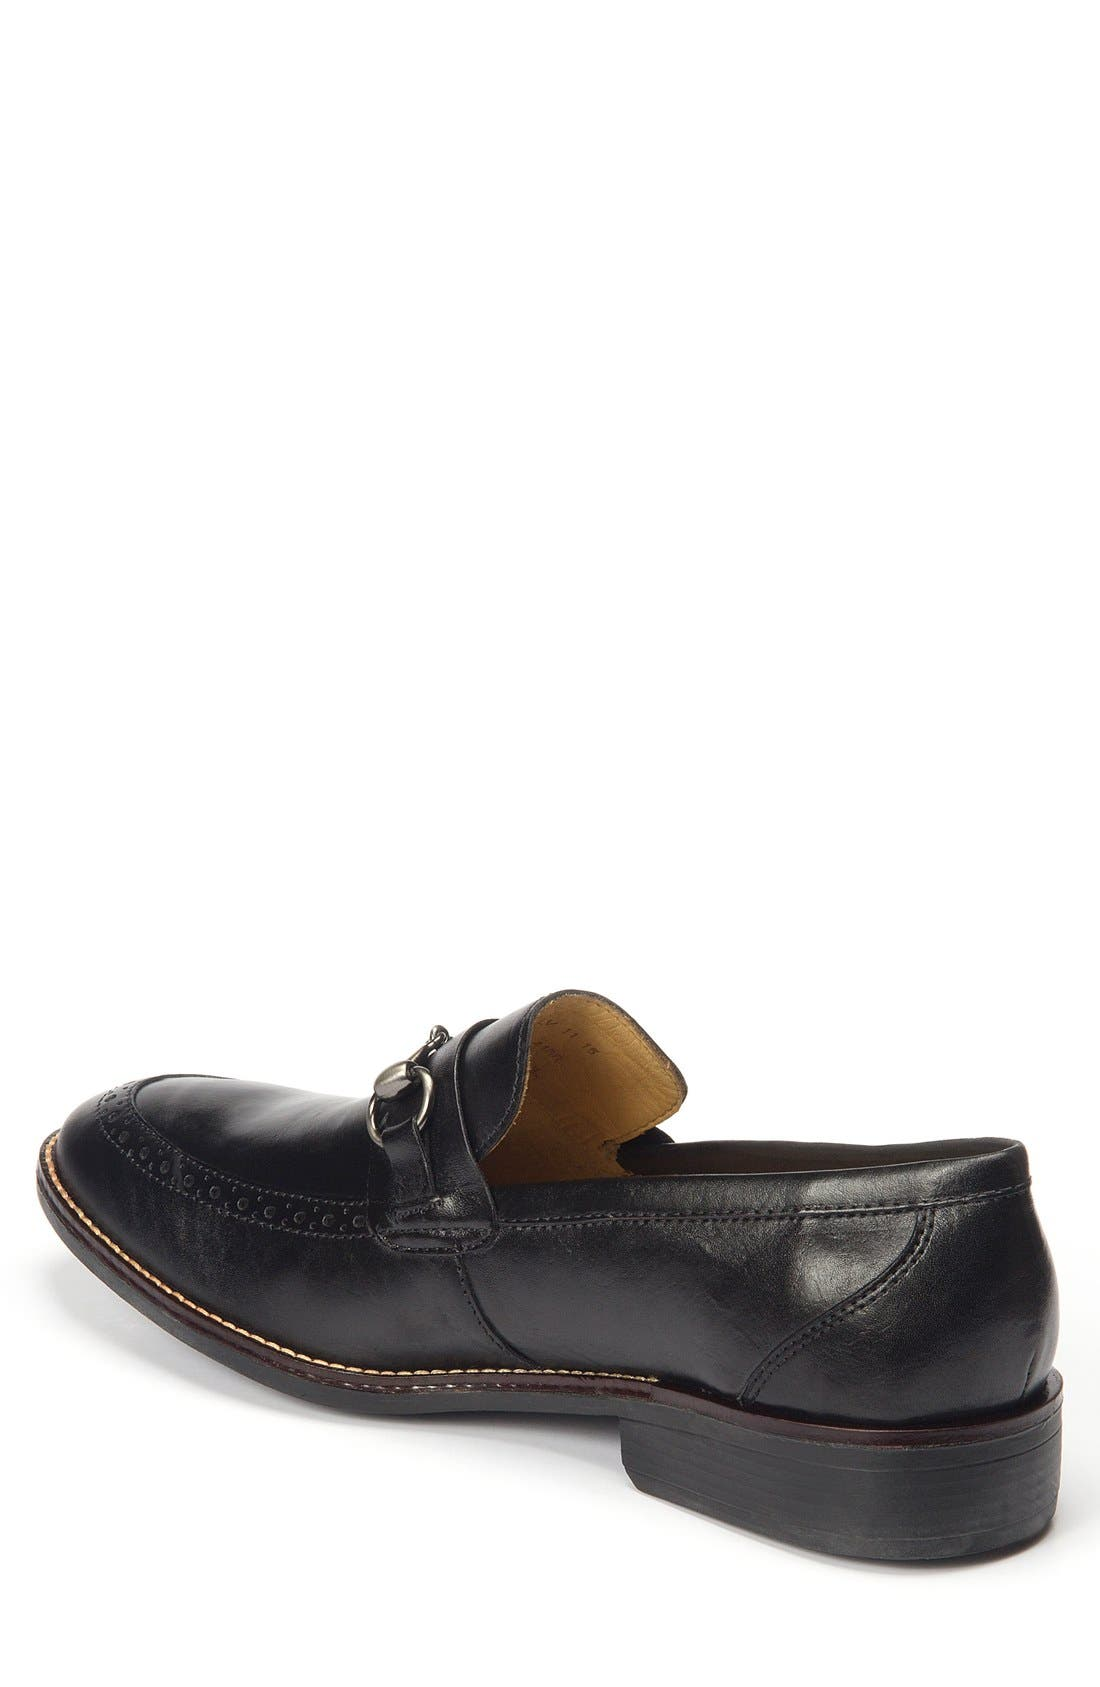 Wesley Bit Loafer,                             Alternate thumbnail 2, color,                             Black Leather